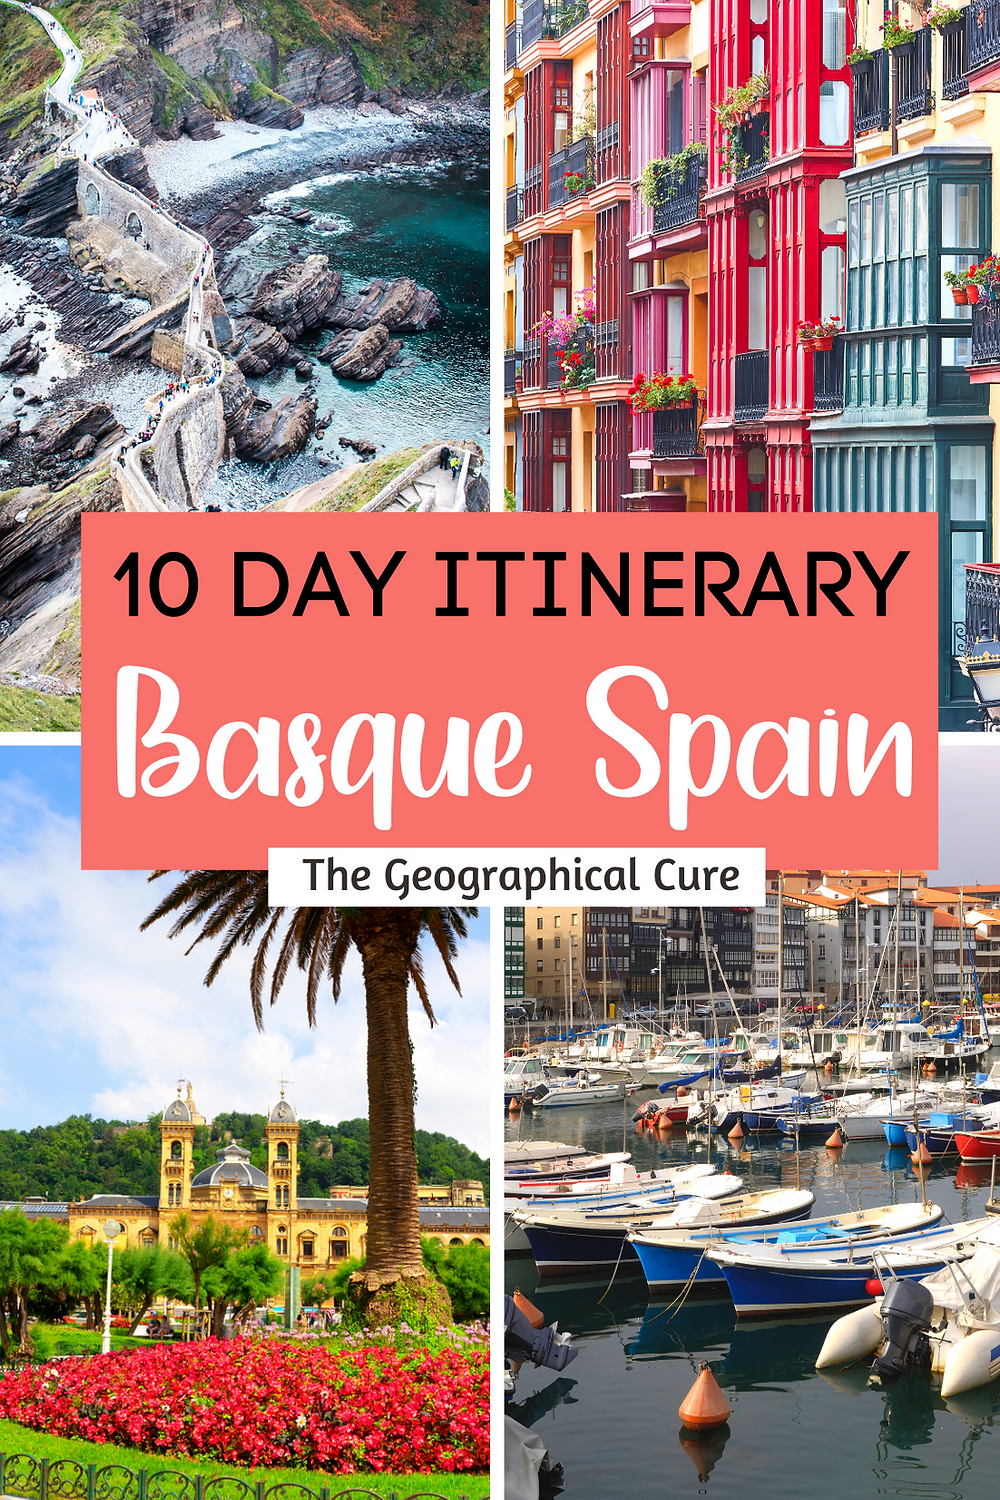 Ultimate 10 Day Itinerary for Basque Spain